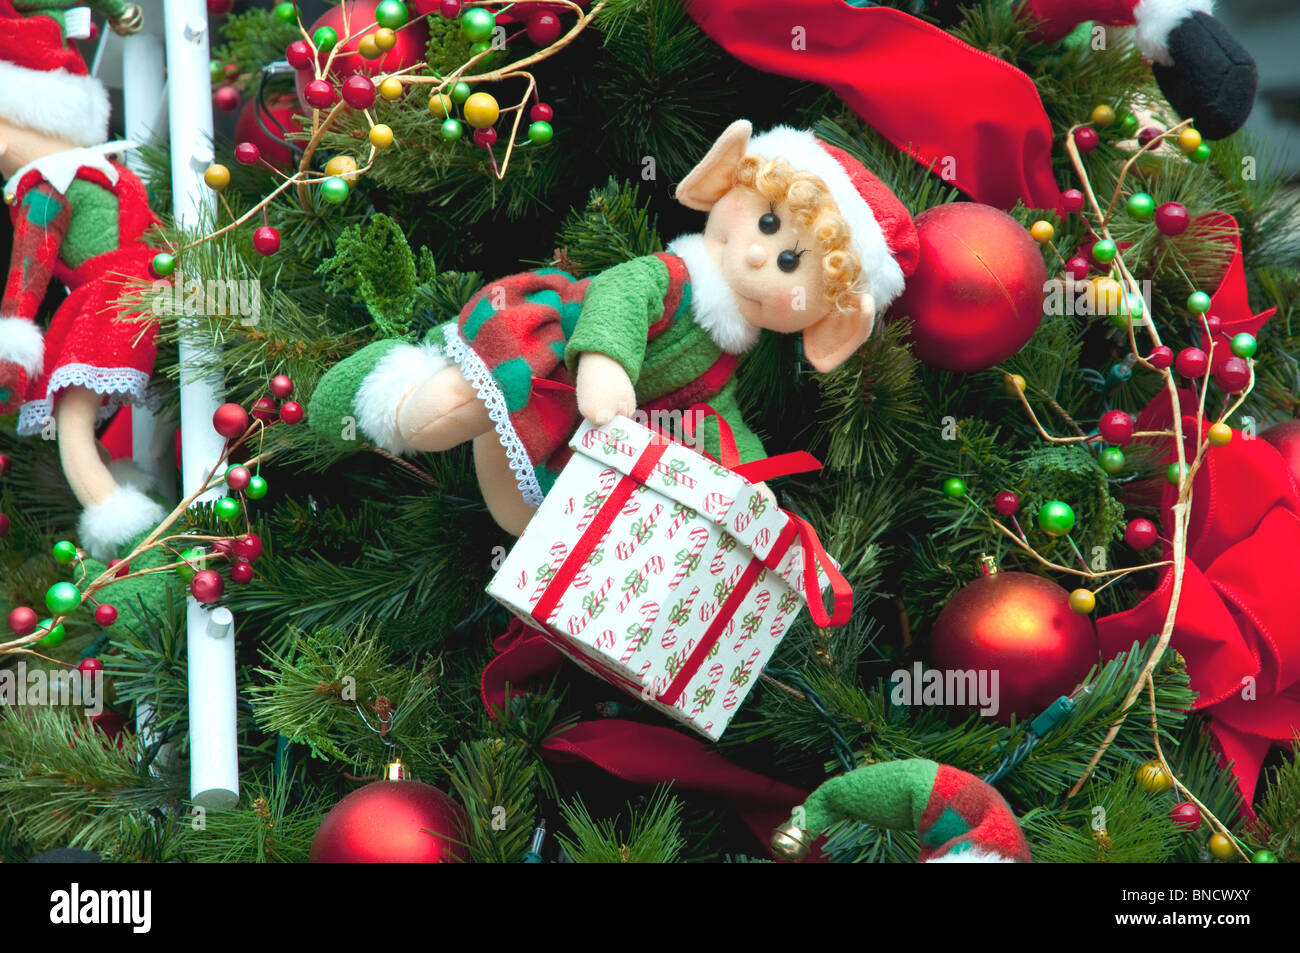 Christmas tree decorations at the Larcomar Mall in Miraflores, Lima, Peru, South America. - Stock Image